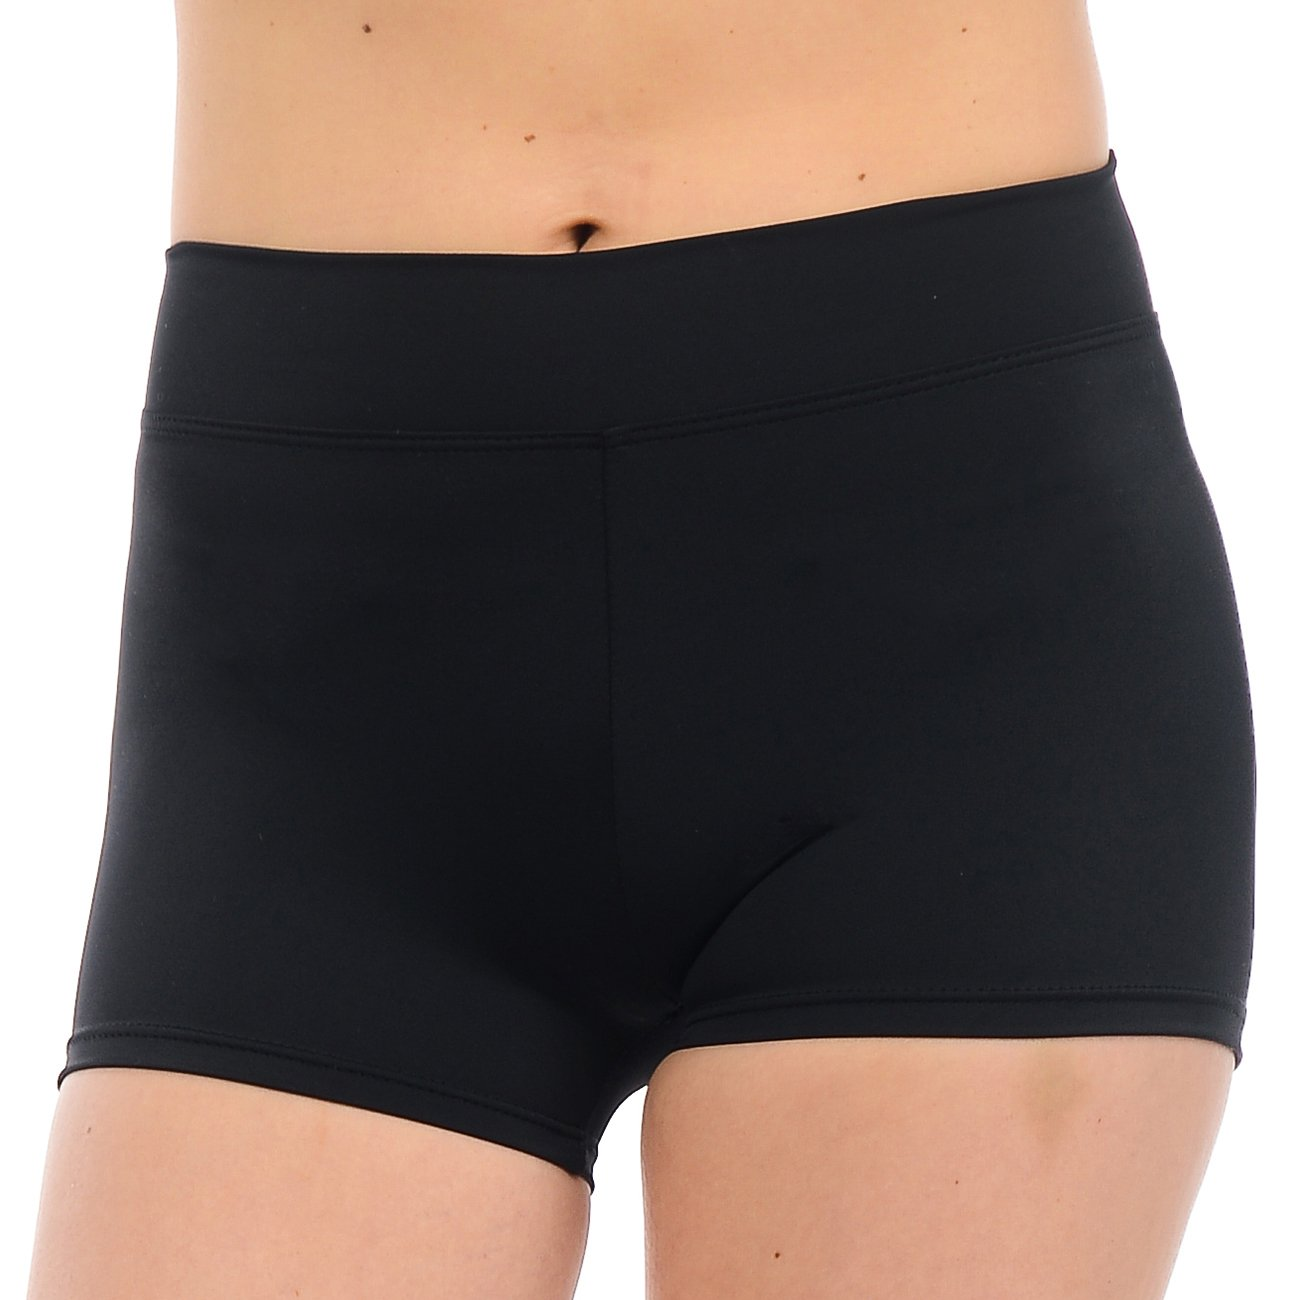 ANZA Girls Active Wear Dance Booty Shorts-Black,X-Small(2/4) by Anza Collection